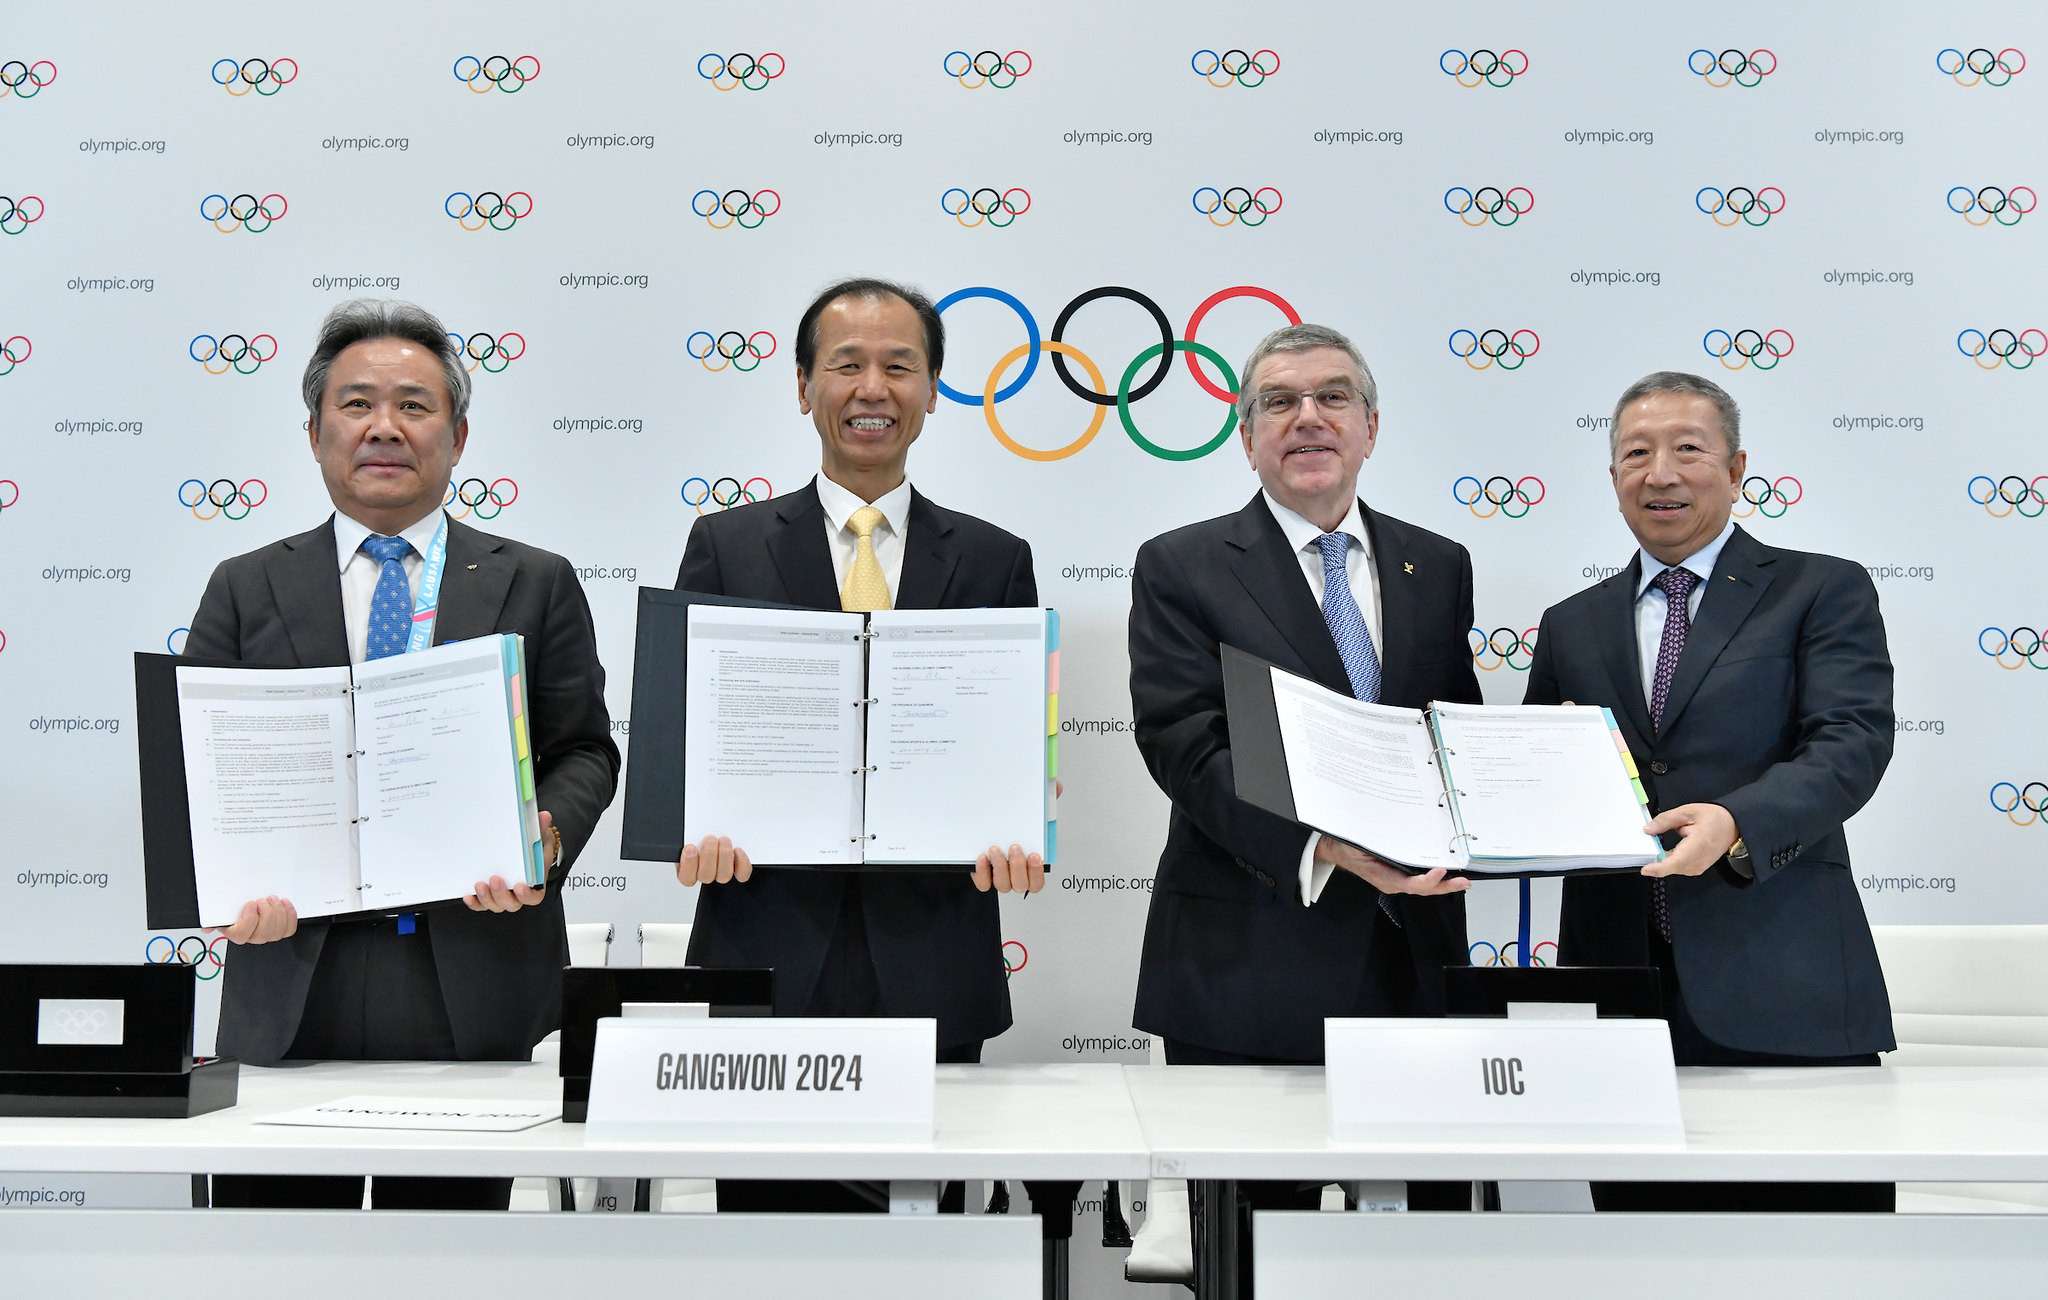 insidethegames is reporting LIVE from the Lausanne 2020 Winter Youth Olympic Games